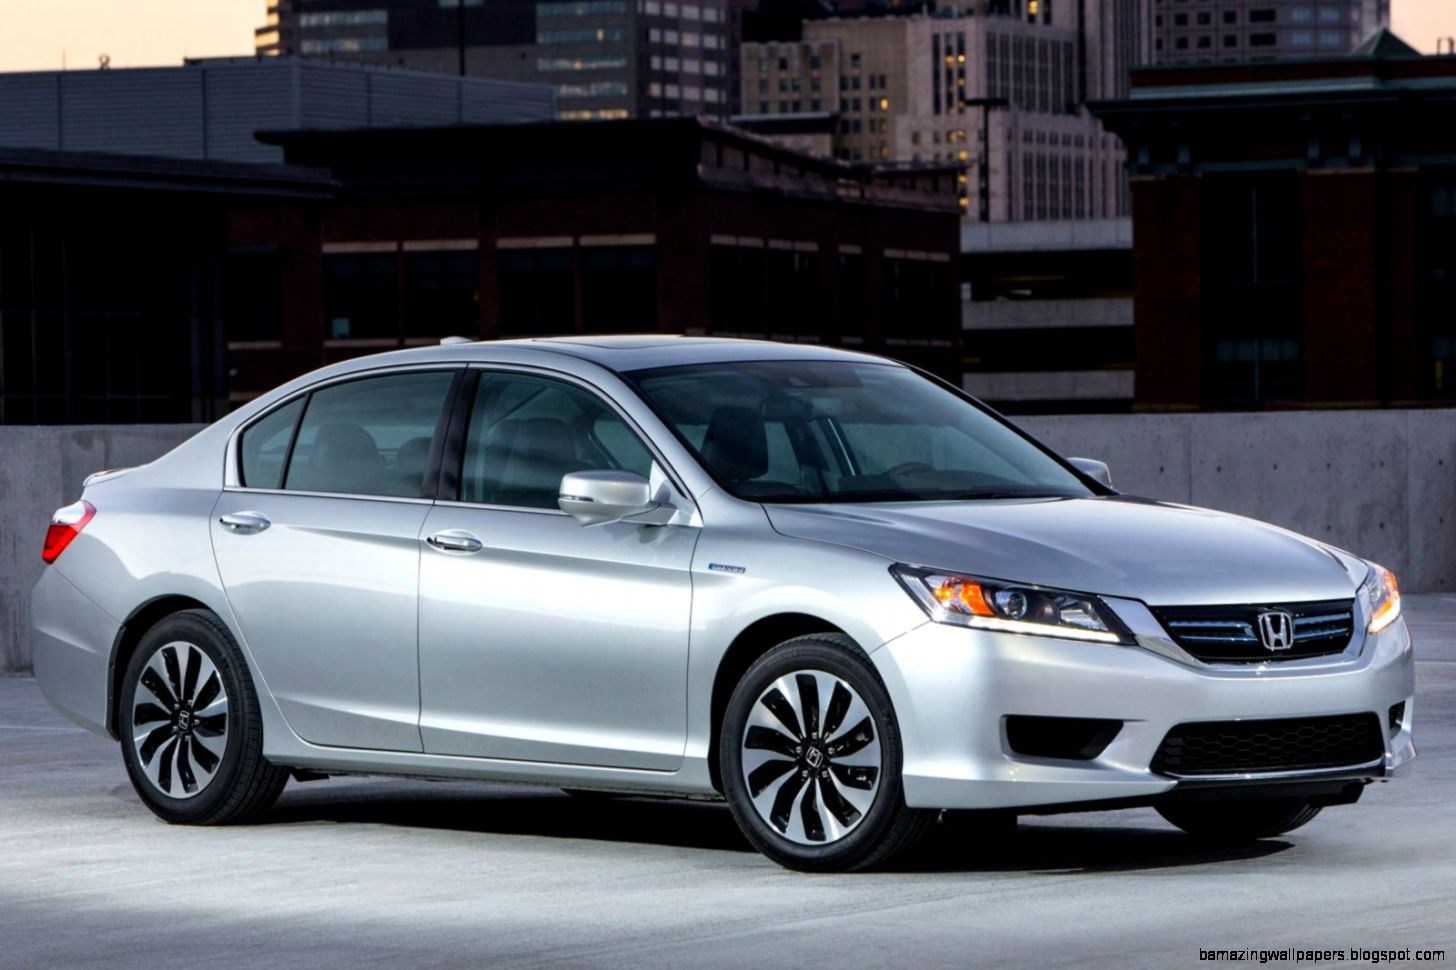 honda accord hybrid cars amazing wallpapers. Black Bedroom Furniture Sets. Home Design Ideas